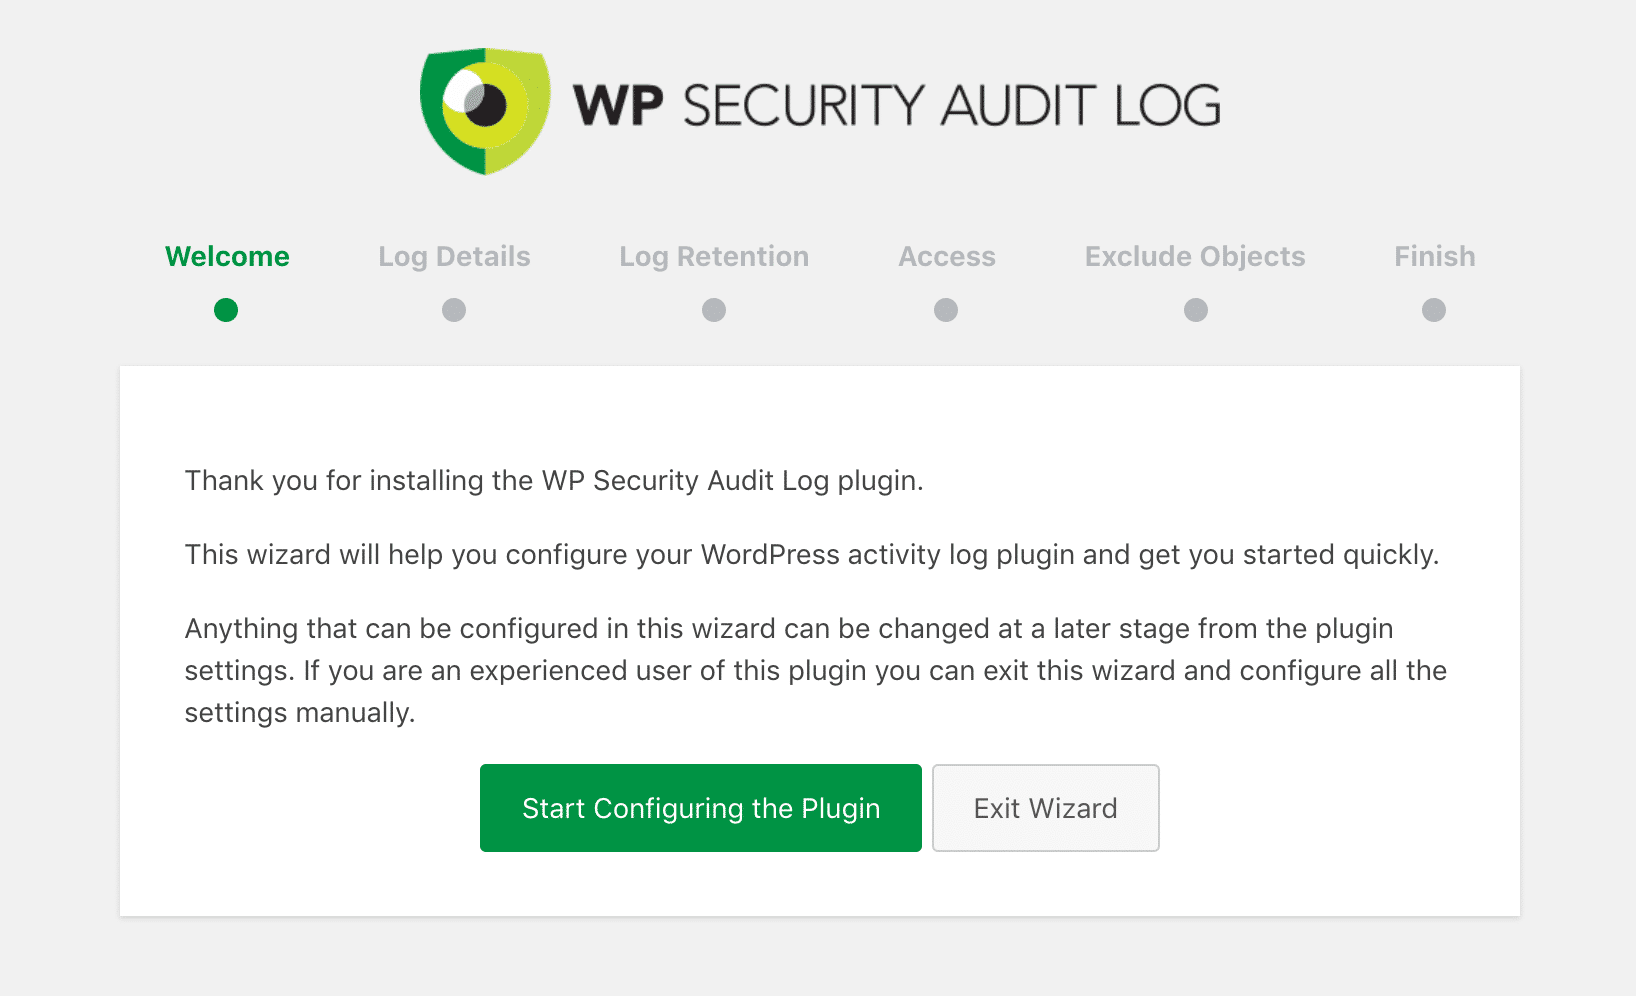 Configurer le plugin WP Security Audit Log